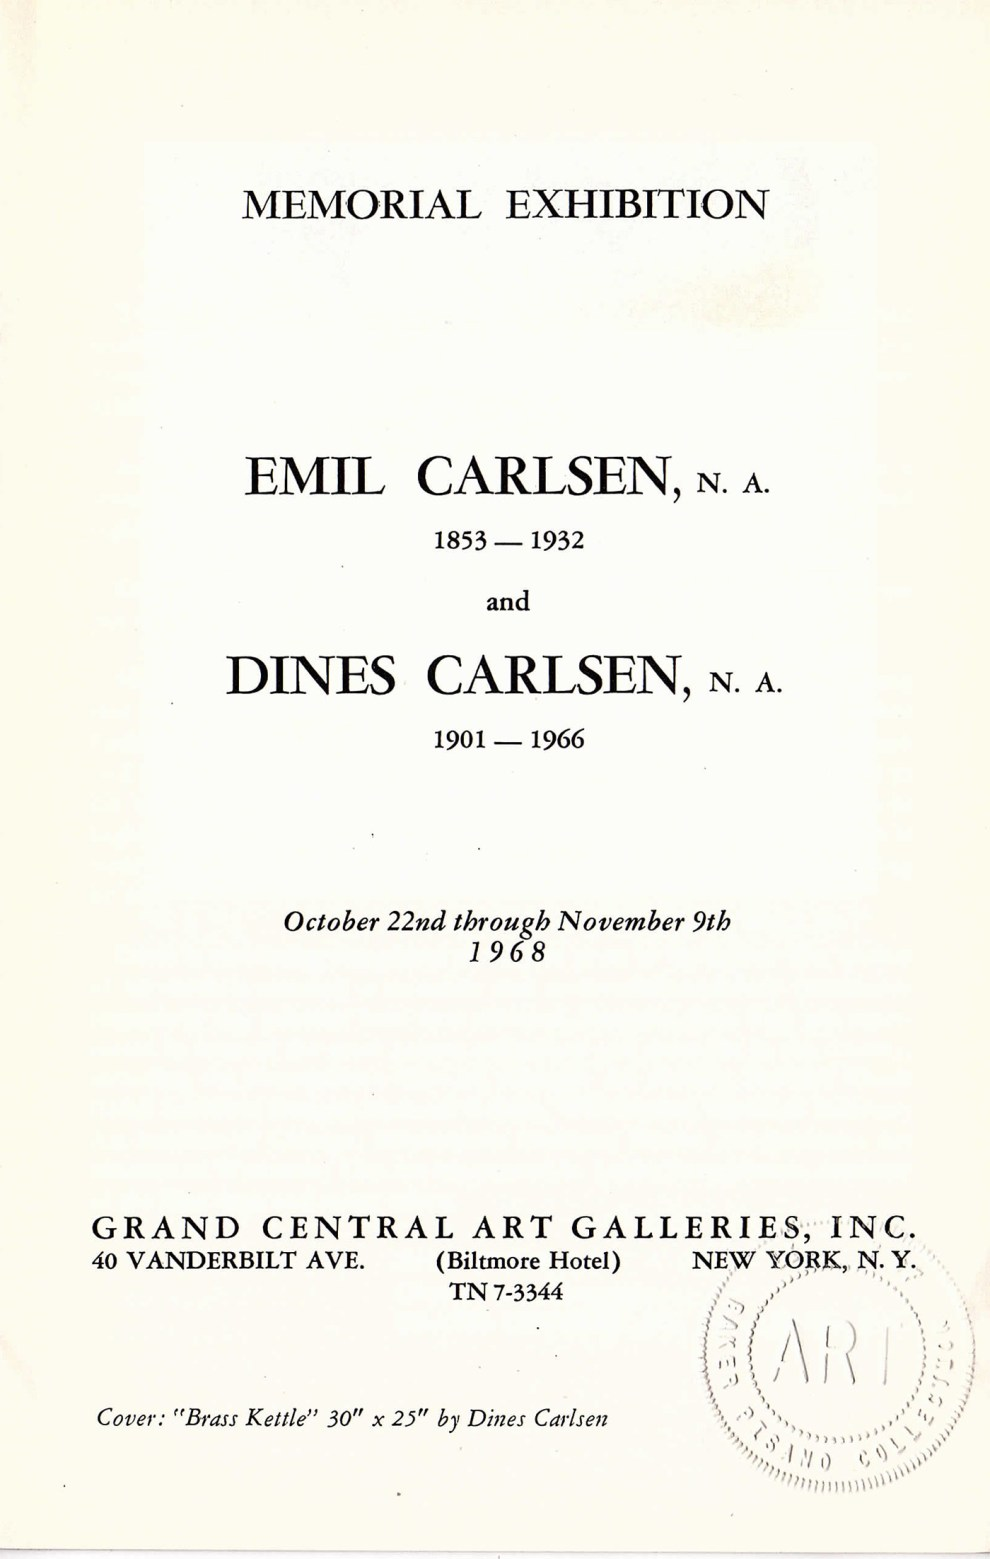 "1968 The Grand Central Art Gallery, New York, NY, ""Memorial Exhibition Emil Carlsen & Dines Carlsen"" October 22-November 9"